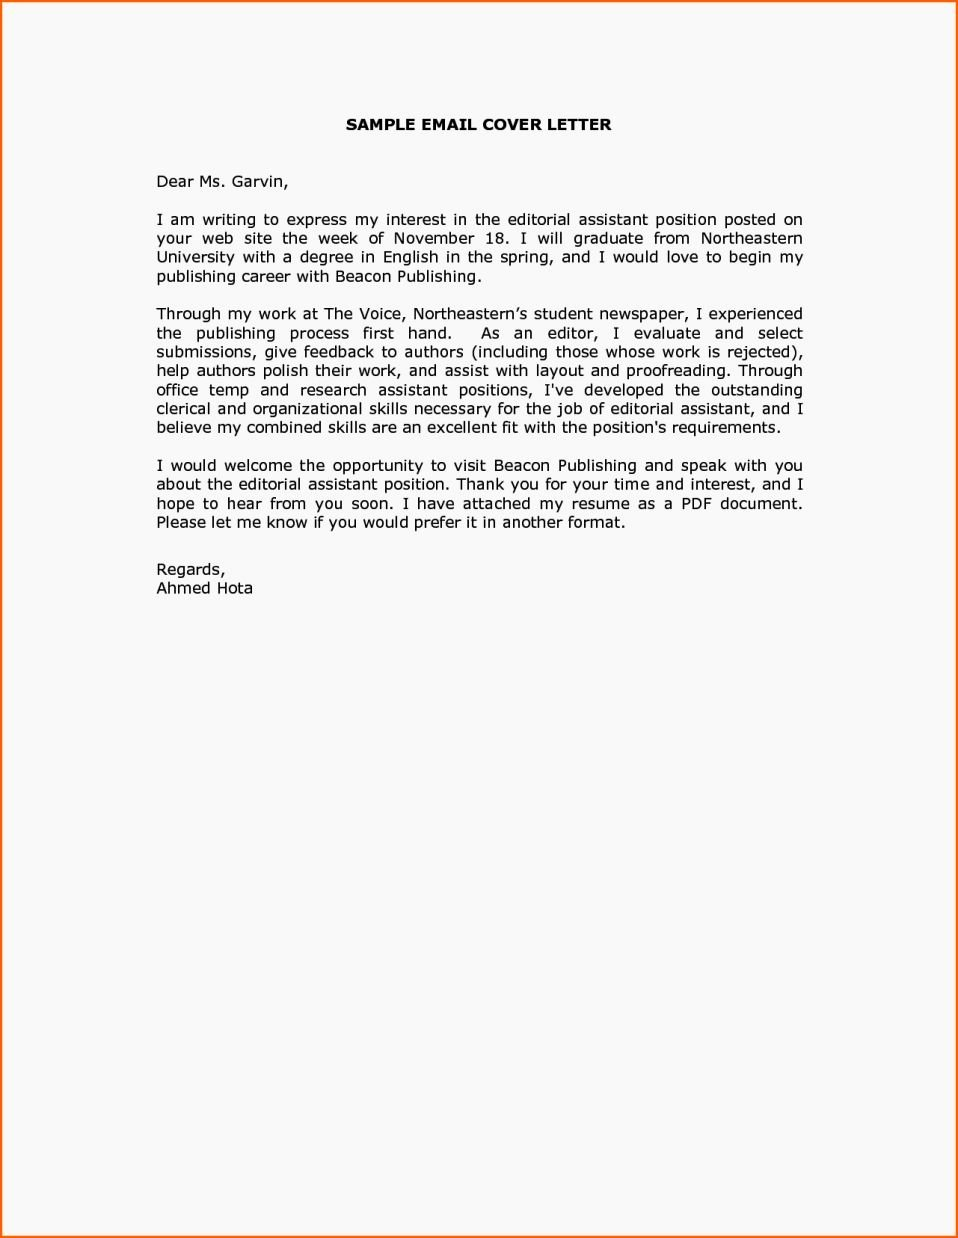 Email Cover Letter Template Unique Cover Letter Sample Email Message